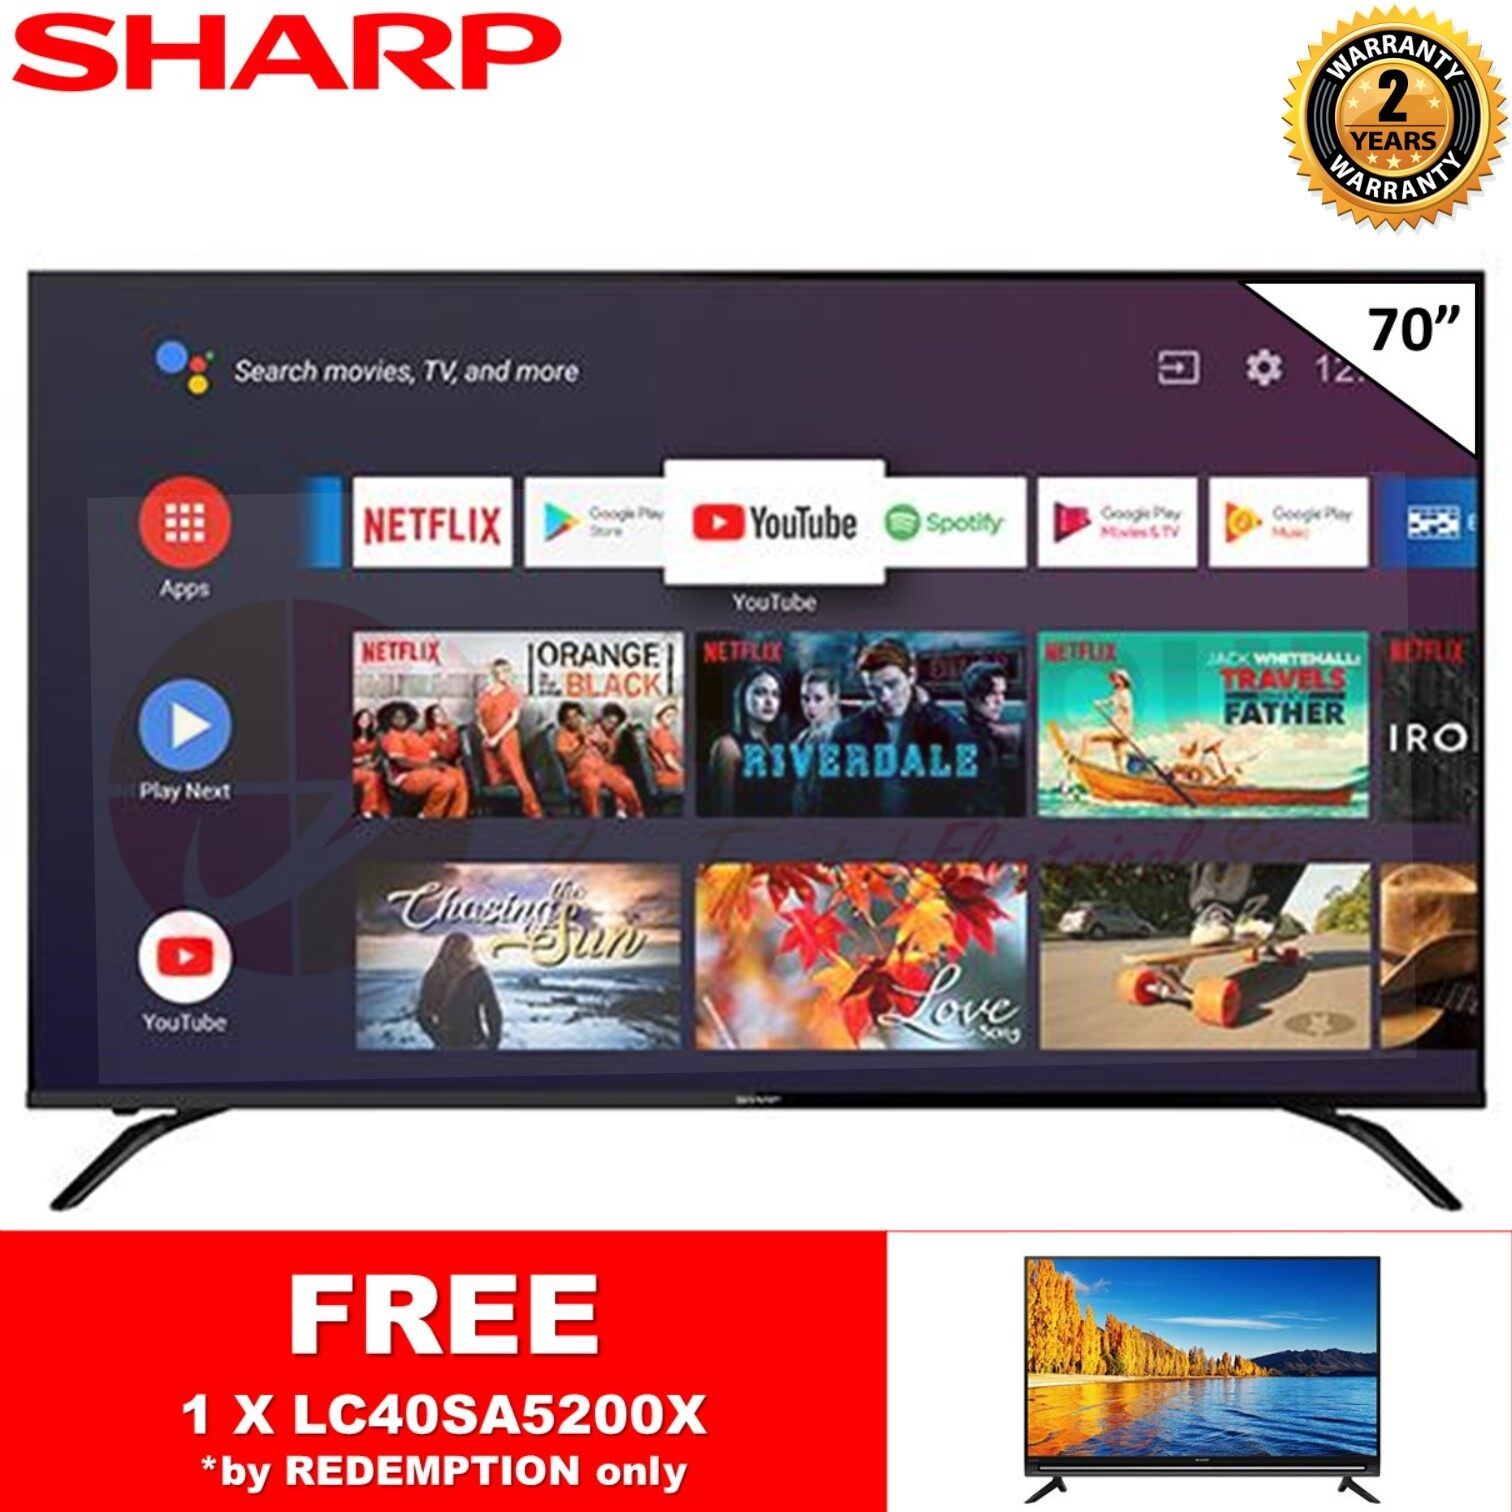 [FREE SHARP LC40SA5200X] (AUTHORISED DEALER) SHARP 4TC70AL1X 70 4K UHD DVB-T2 ANDRIOD TV DTTV IDTV MYTV MYFREEVIEW SUPPORTED